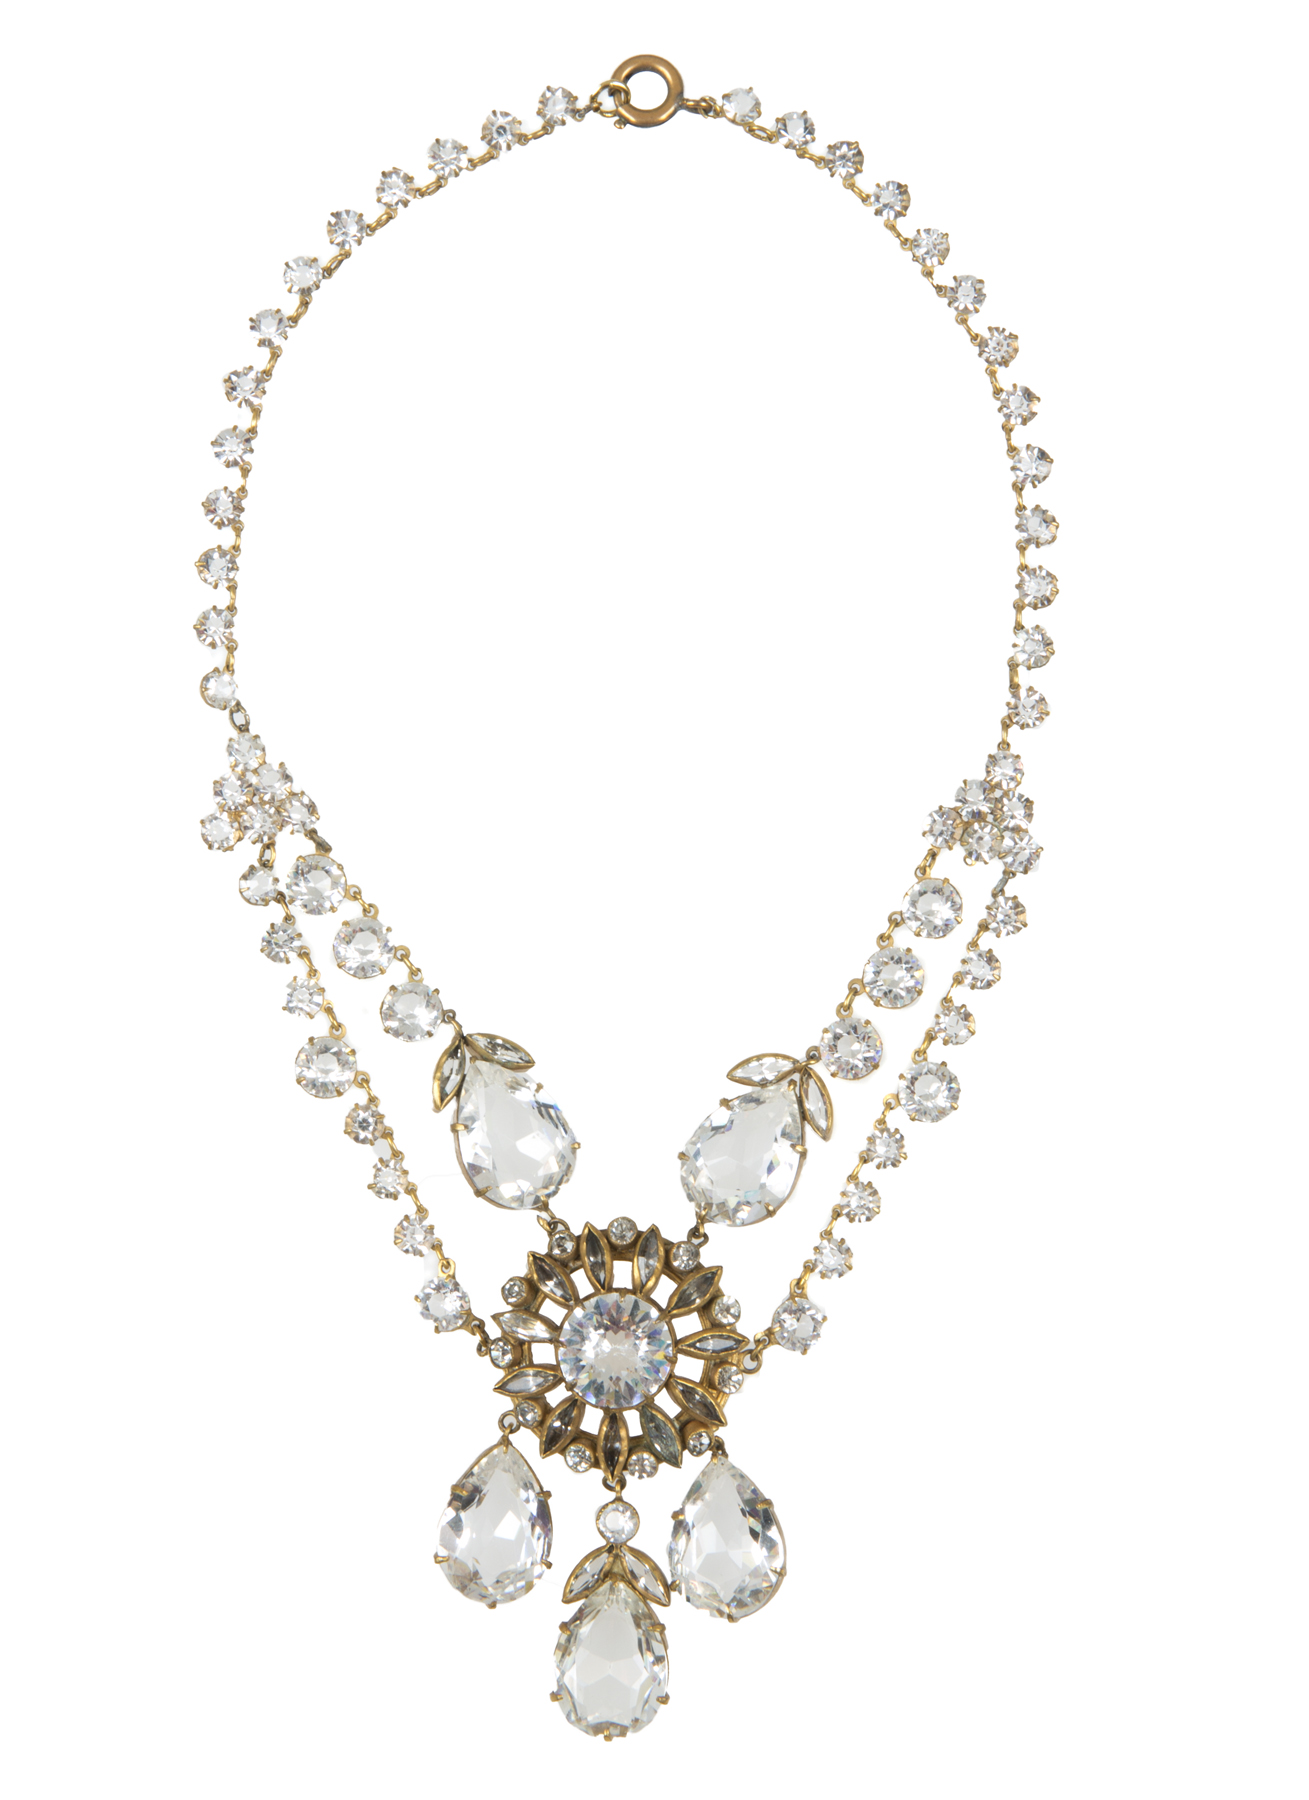 A simulated diamond necklace by Joseff of Hollywood, dating to the mid-1930s, and worn by more than half a dozen celebrities on screen.